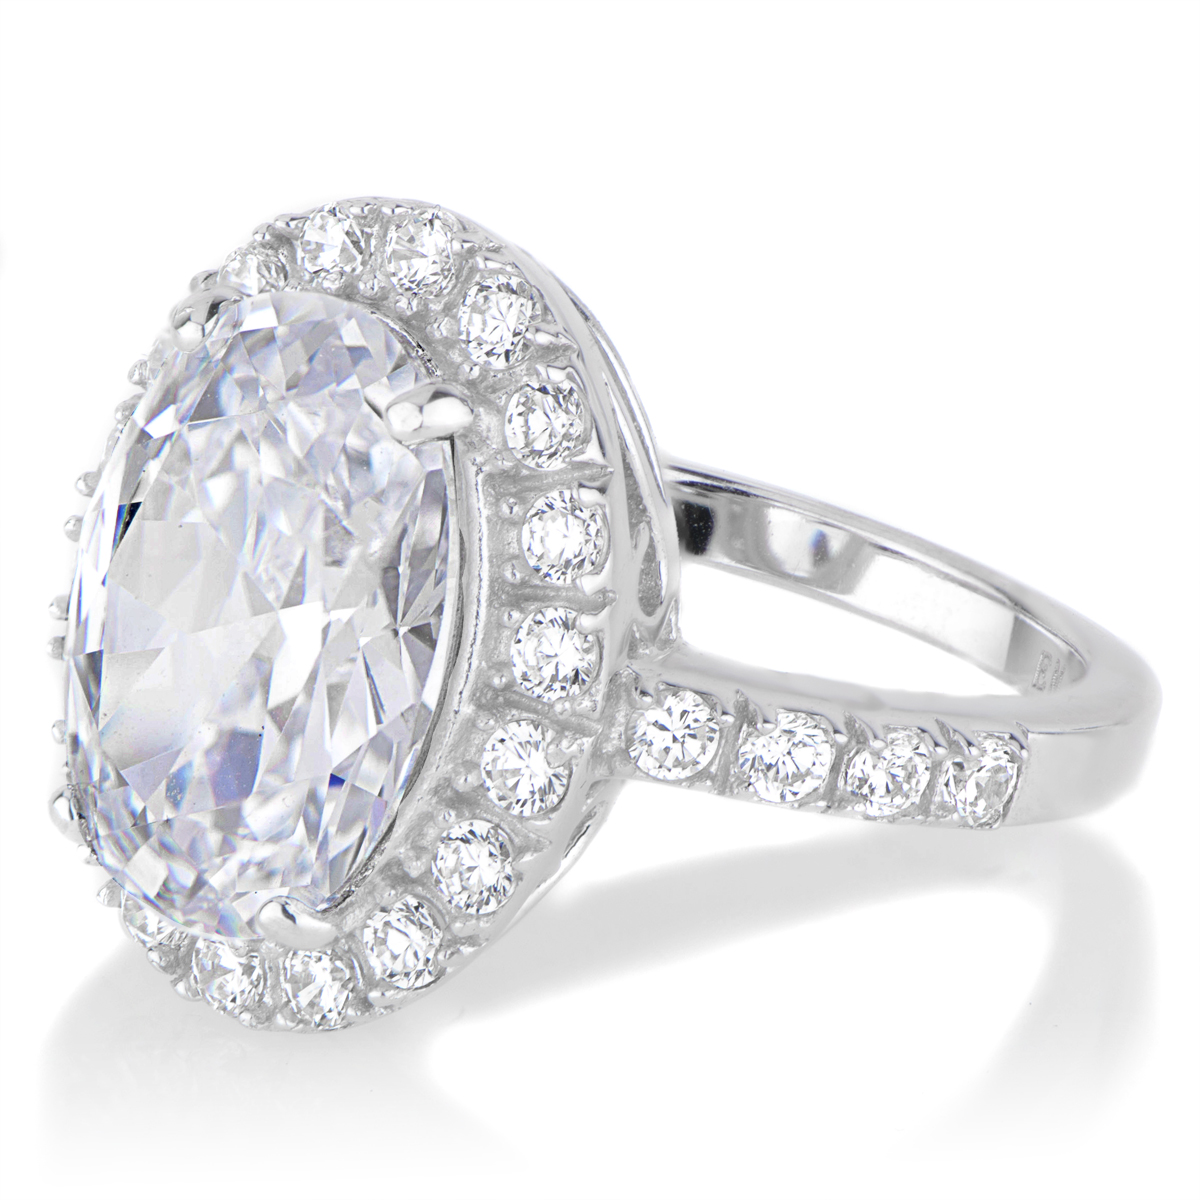 oval cut cz wedding ring with halo - 8 carats